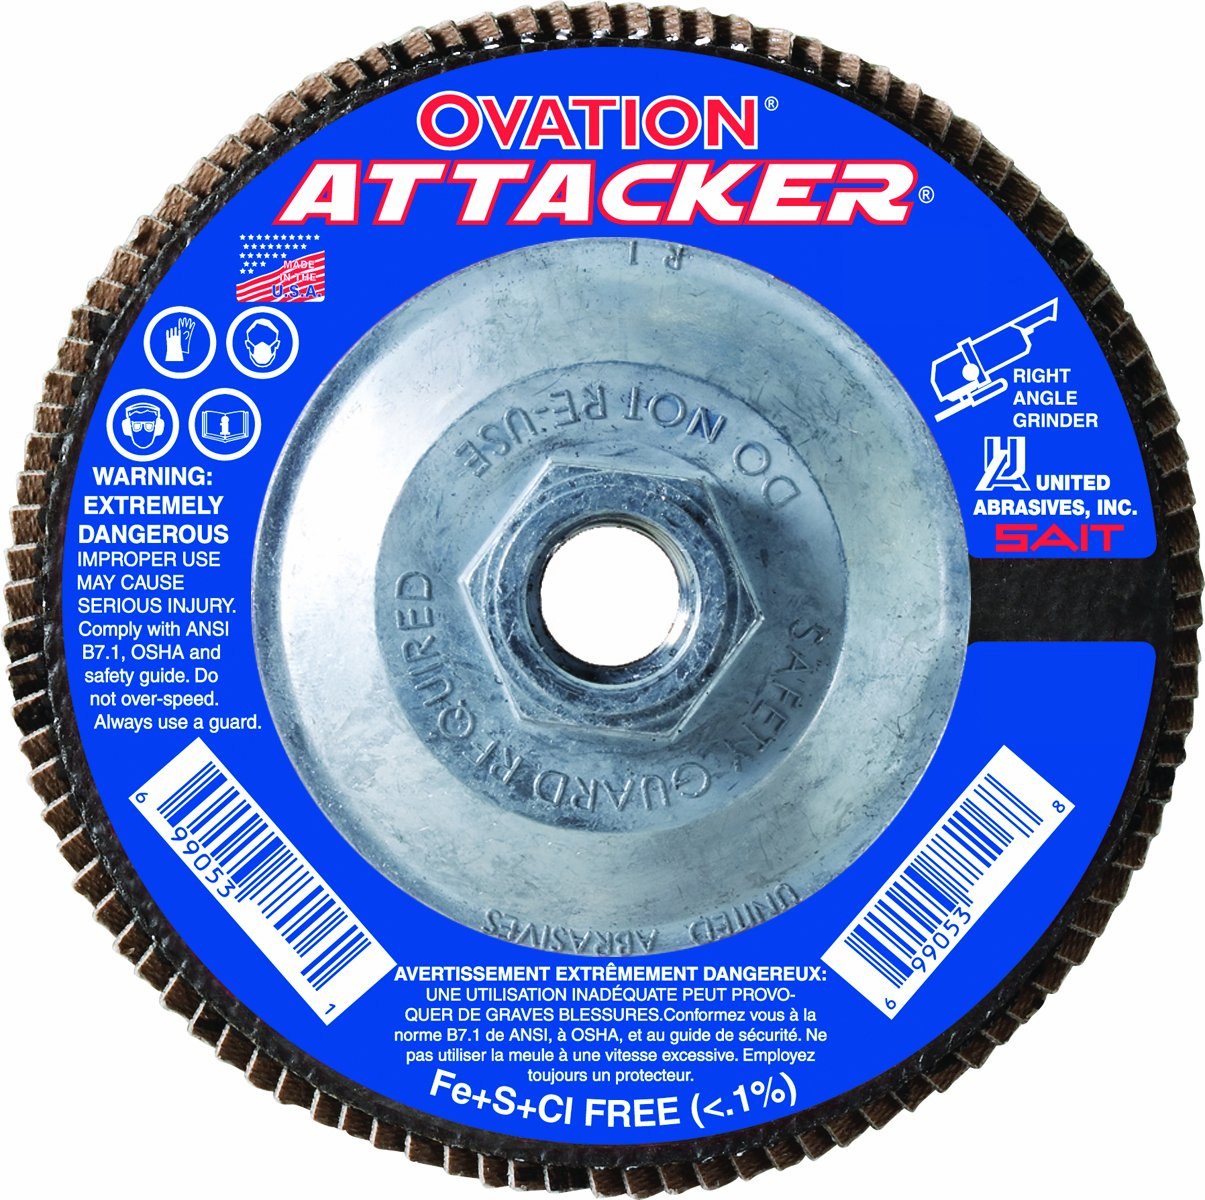 United Abrasives- SAIT 76341 Ovation Attacker Flap Disc, 5 x 5/8-11 Z 120x, 10 Pack